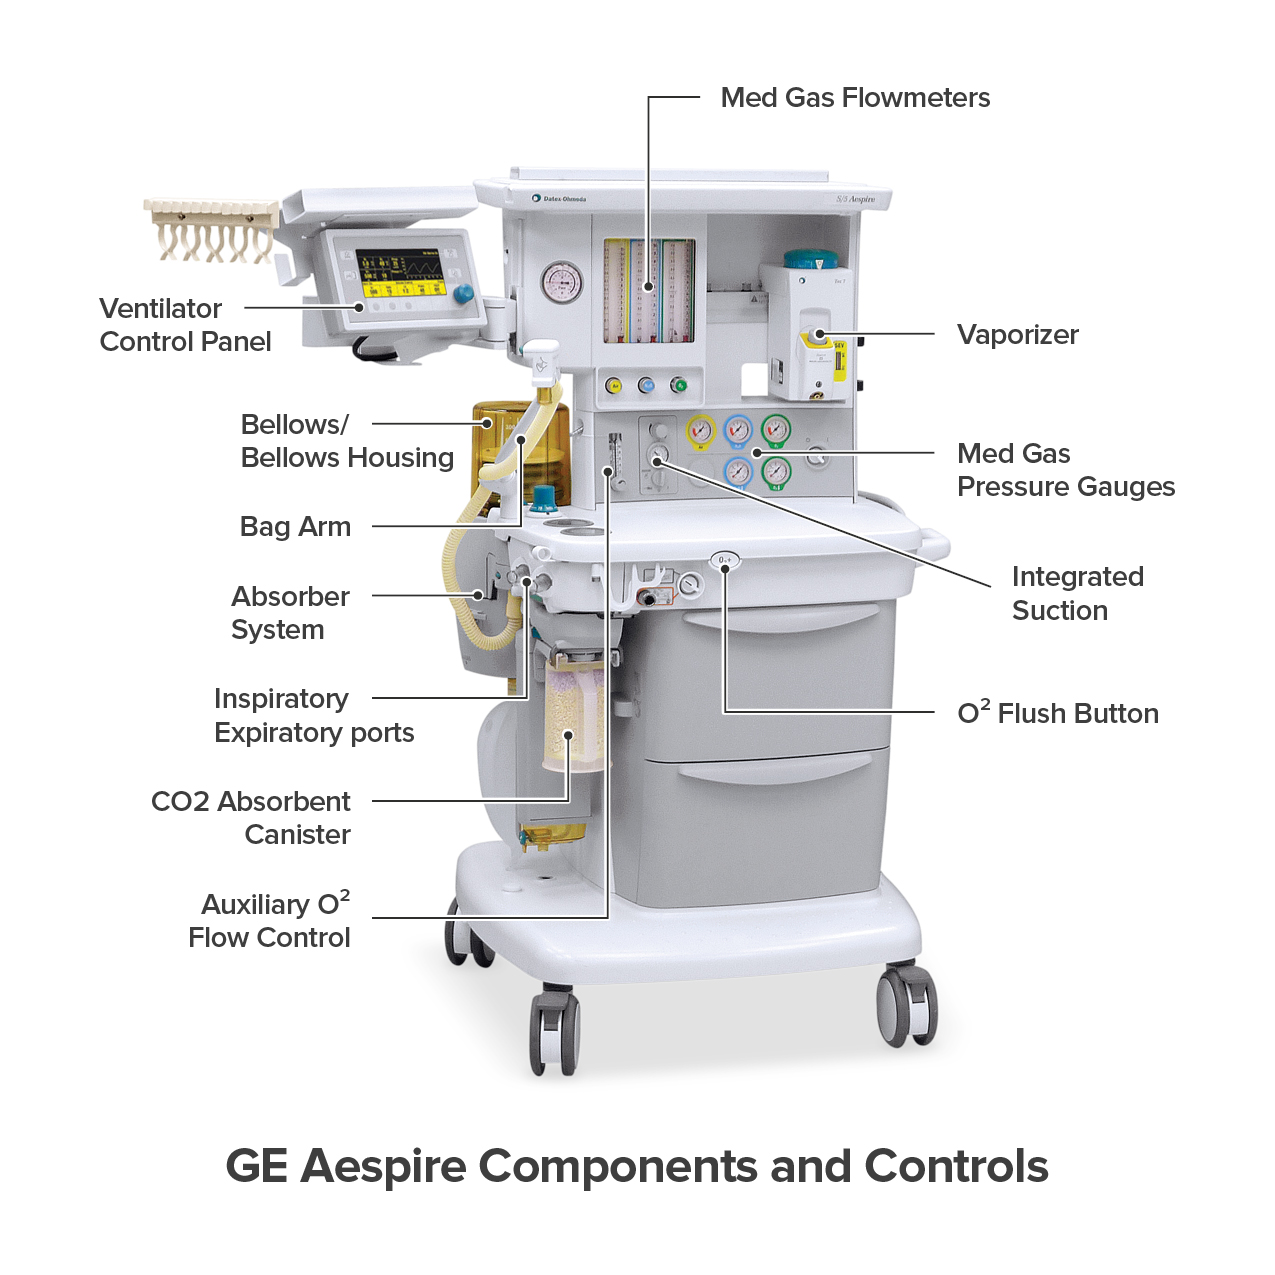 GE Aespire Components and Controls